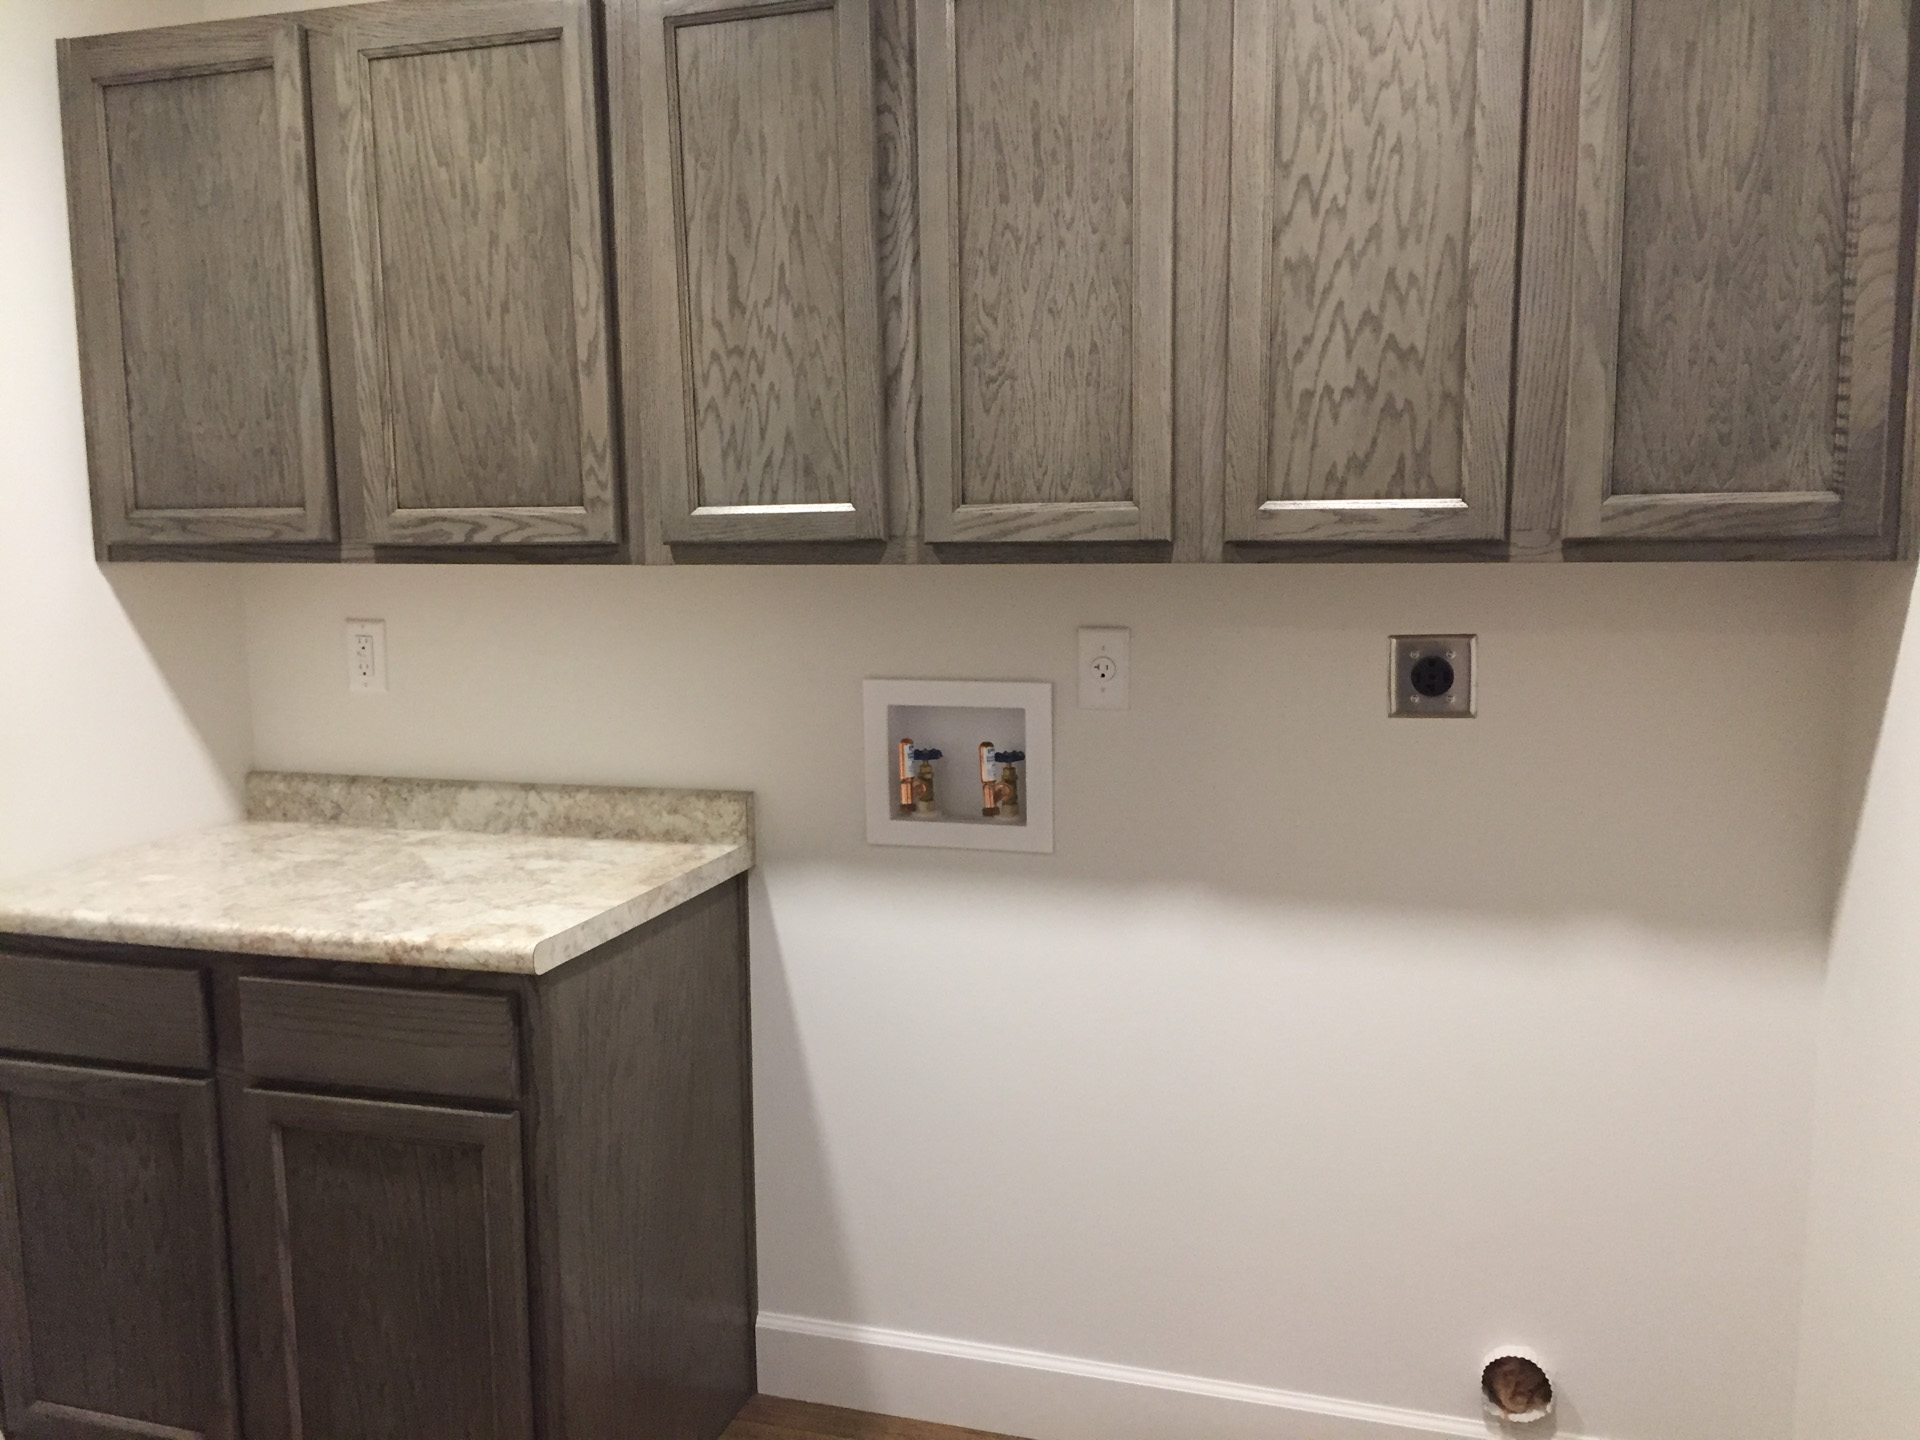 Andover utility room cabinets